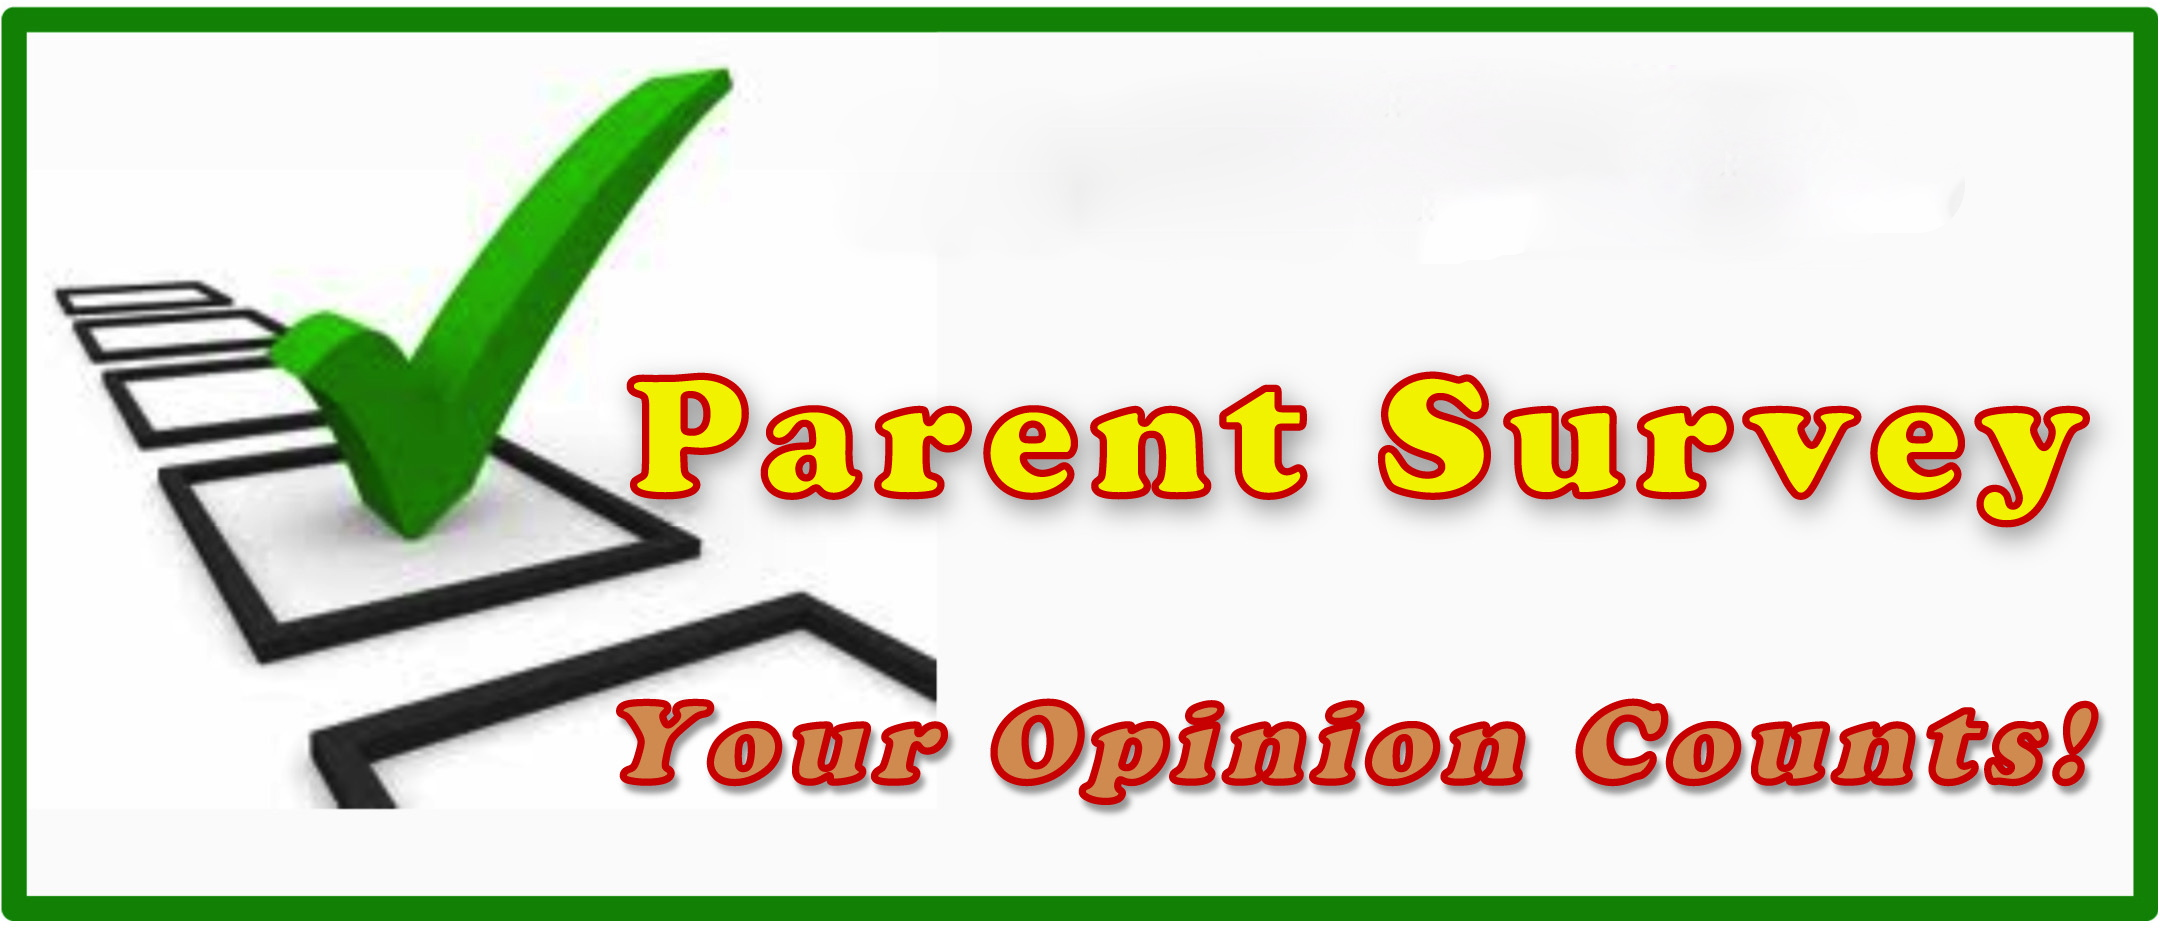 survey-clipart-parent-survey.jpg